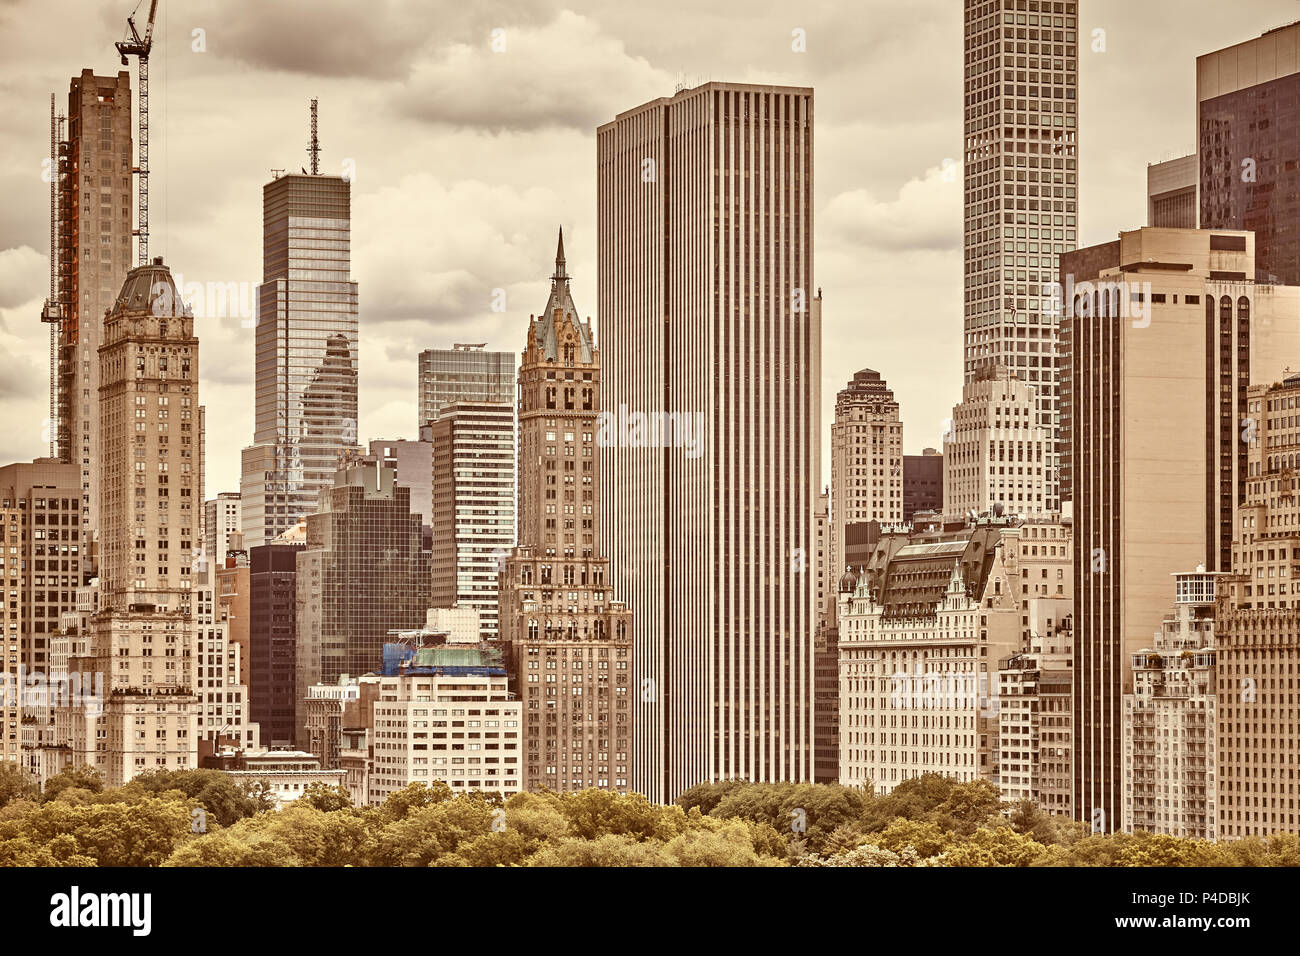 Sepia toned picture of the Manhattan skyline, New York City, USA. - Stock Image